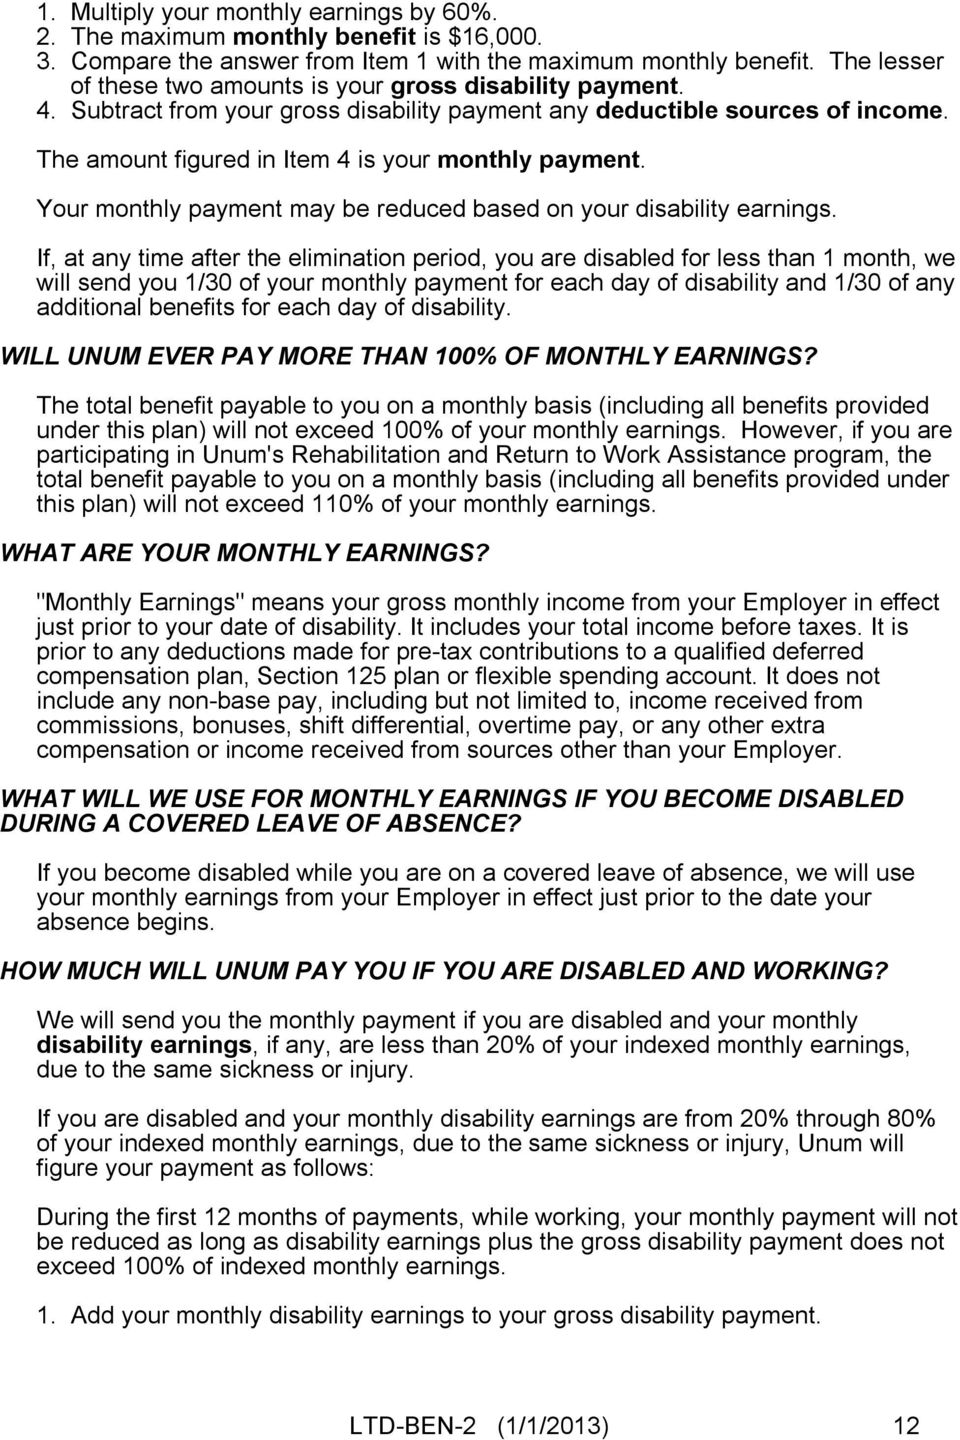 Your monthly payment may be reduced based on your disability earnings.